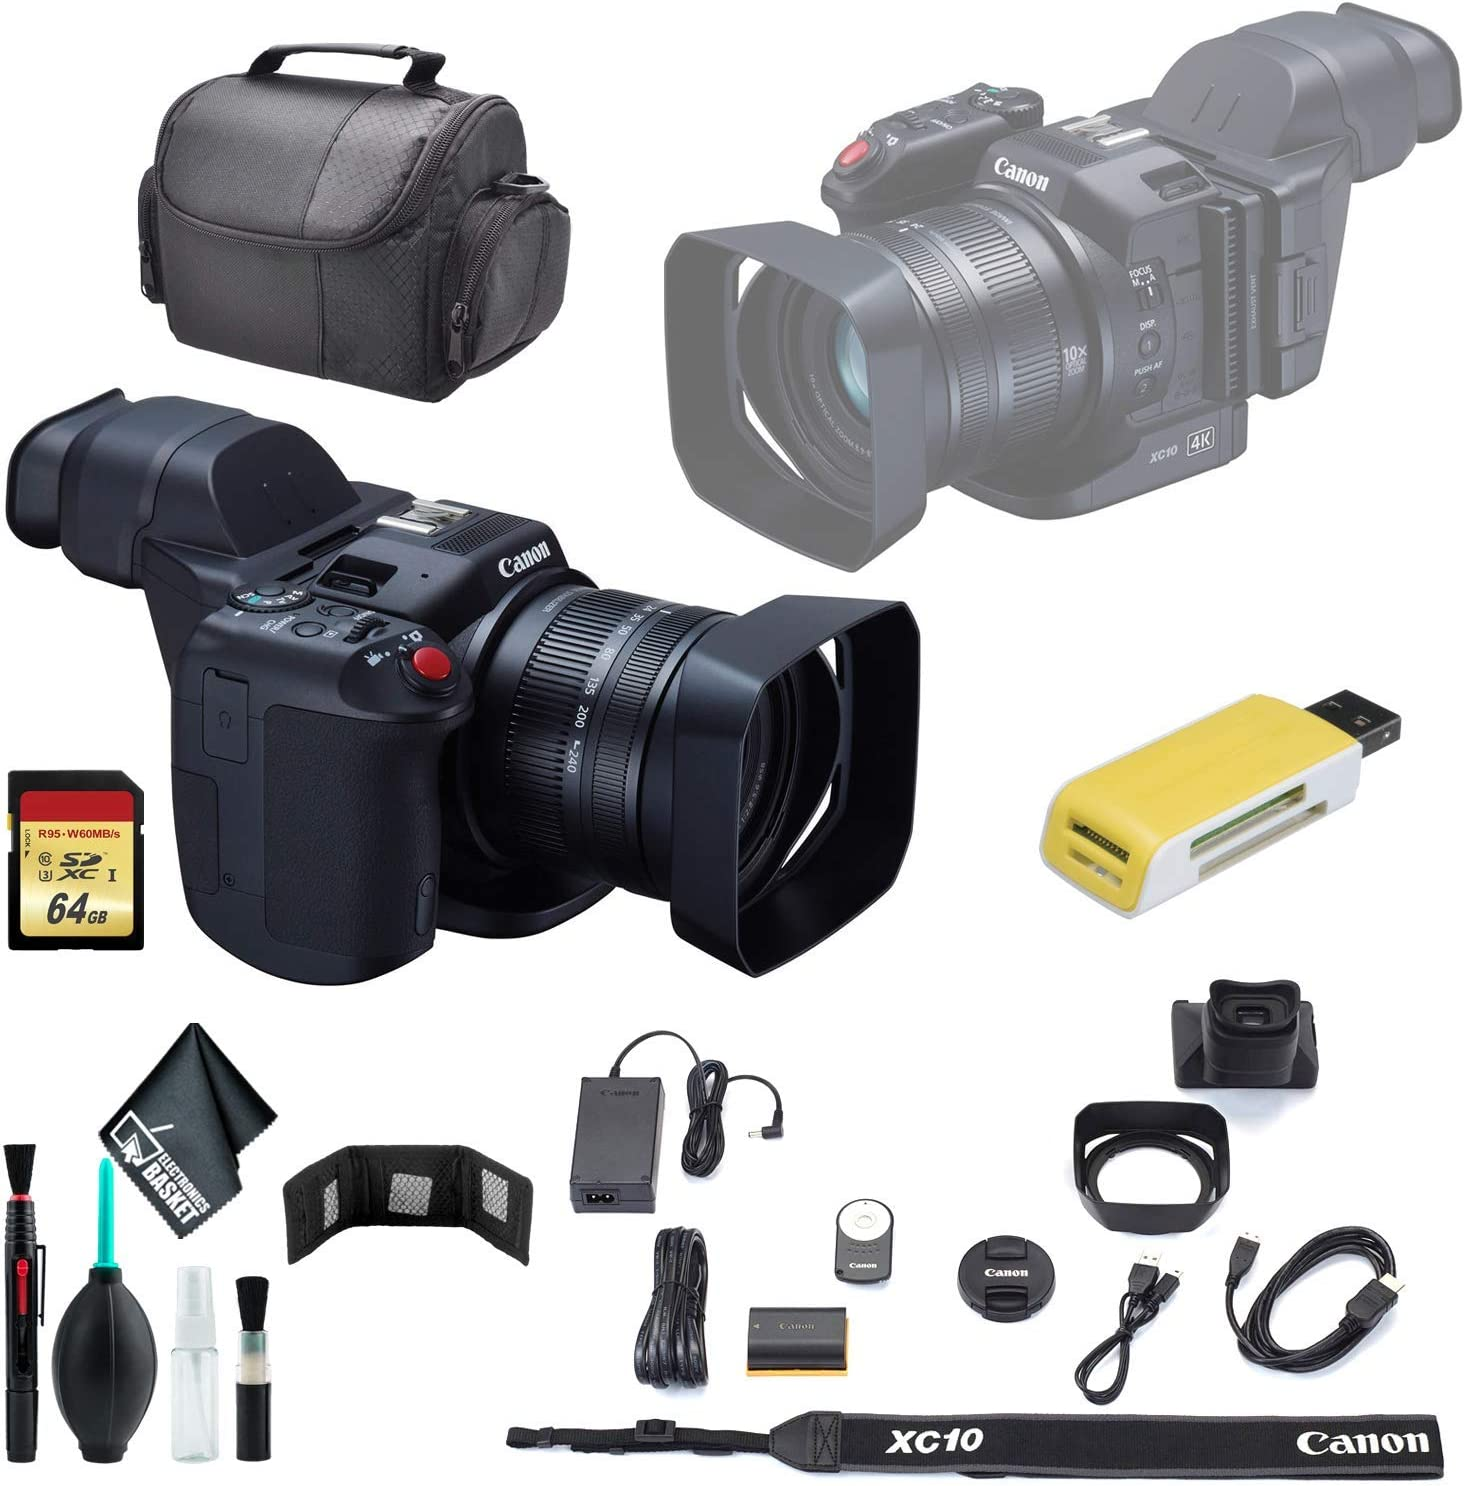 Canon XC10 4K Professional Camcorder Factory outlet Soft Case USB + OFFicial shop Carrying